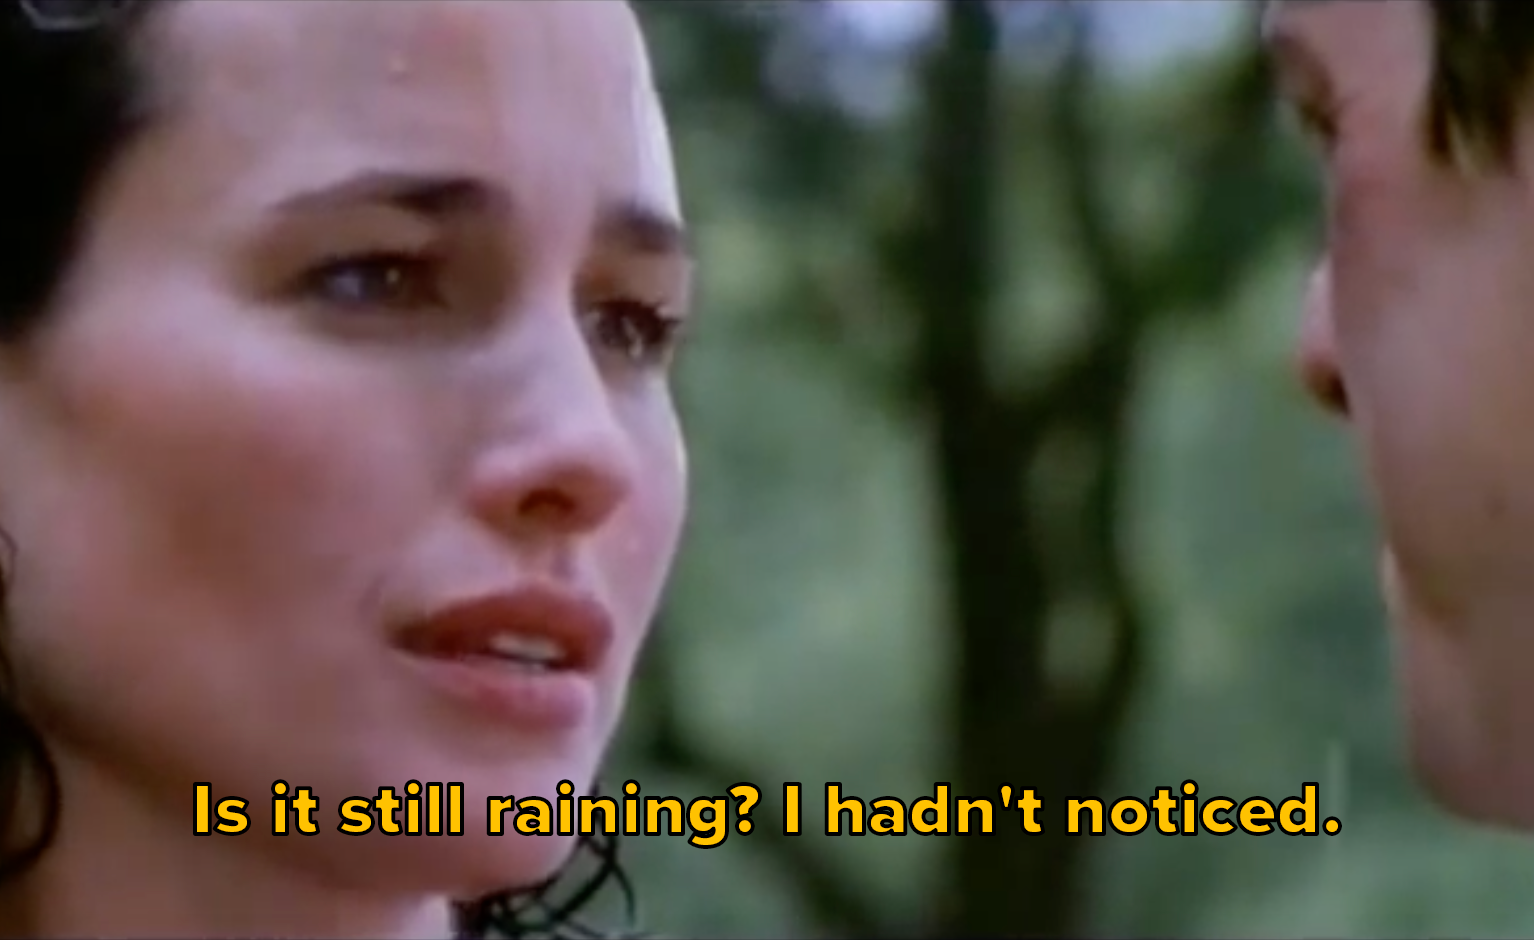 """Carrie saying, """"Is it still raining? I hadn't noticed"""" in the pouring rain"""